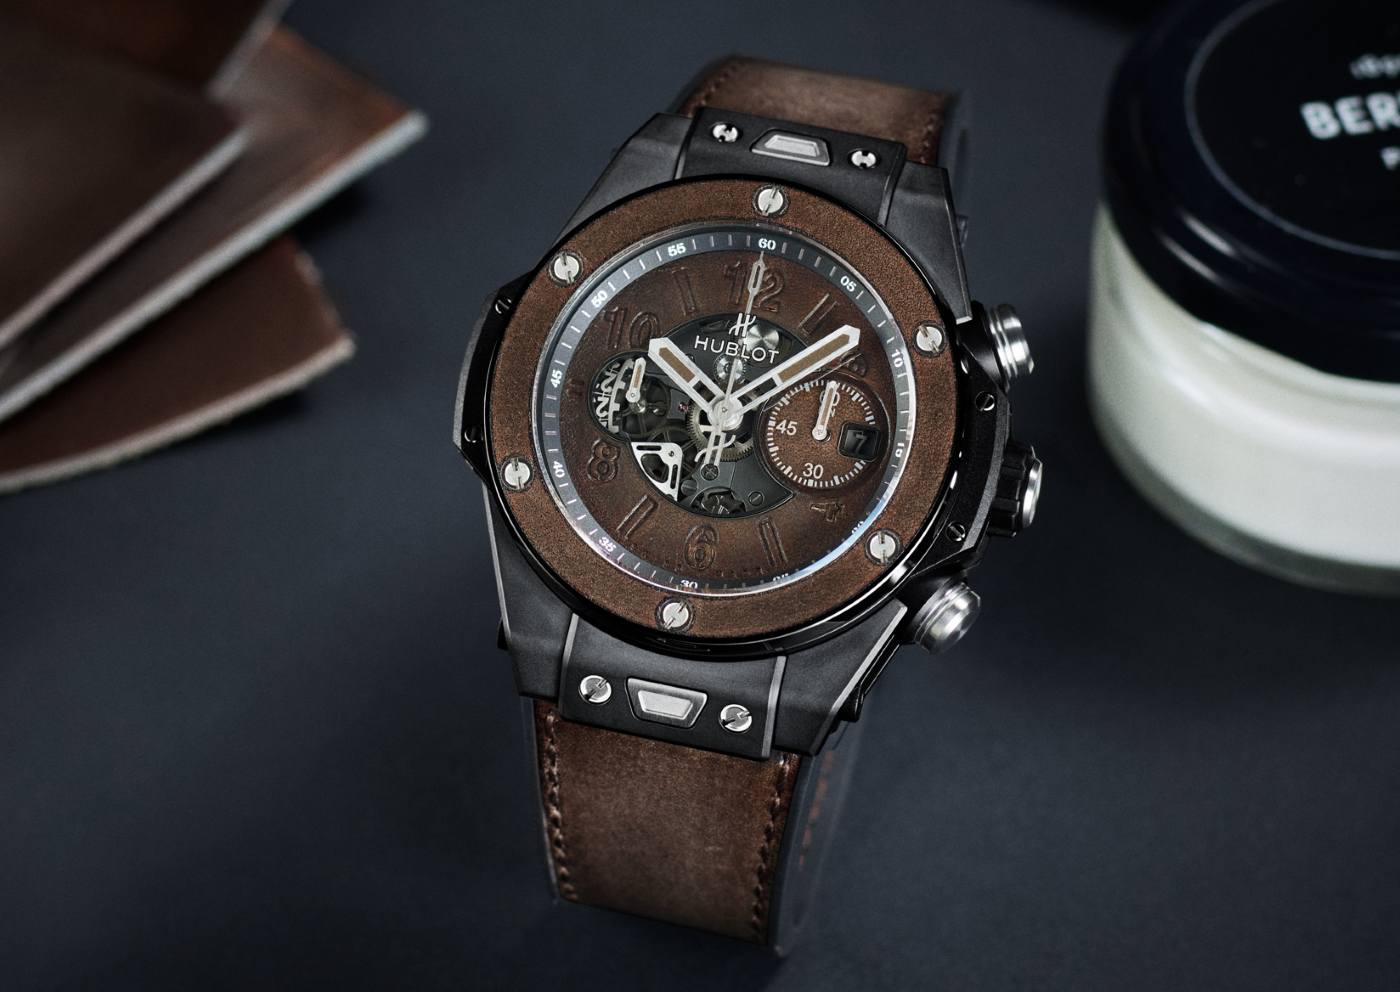 hublot_big_bang_unico_berluti_cold_brown_5-_europa_star_watch_magazine_2020